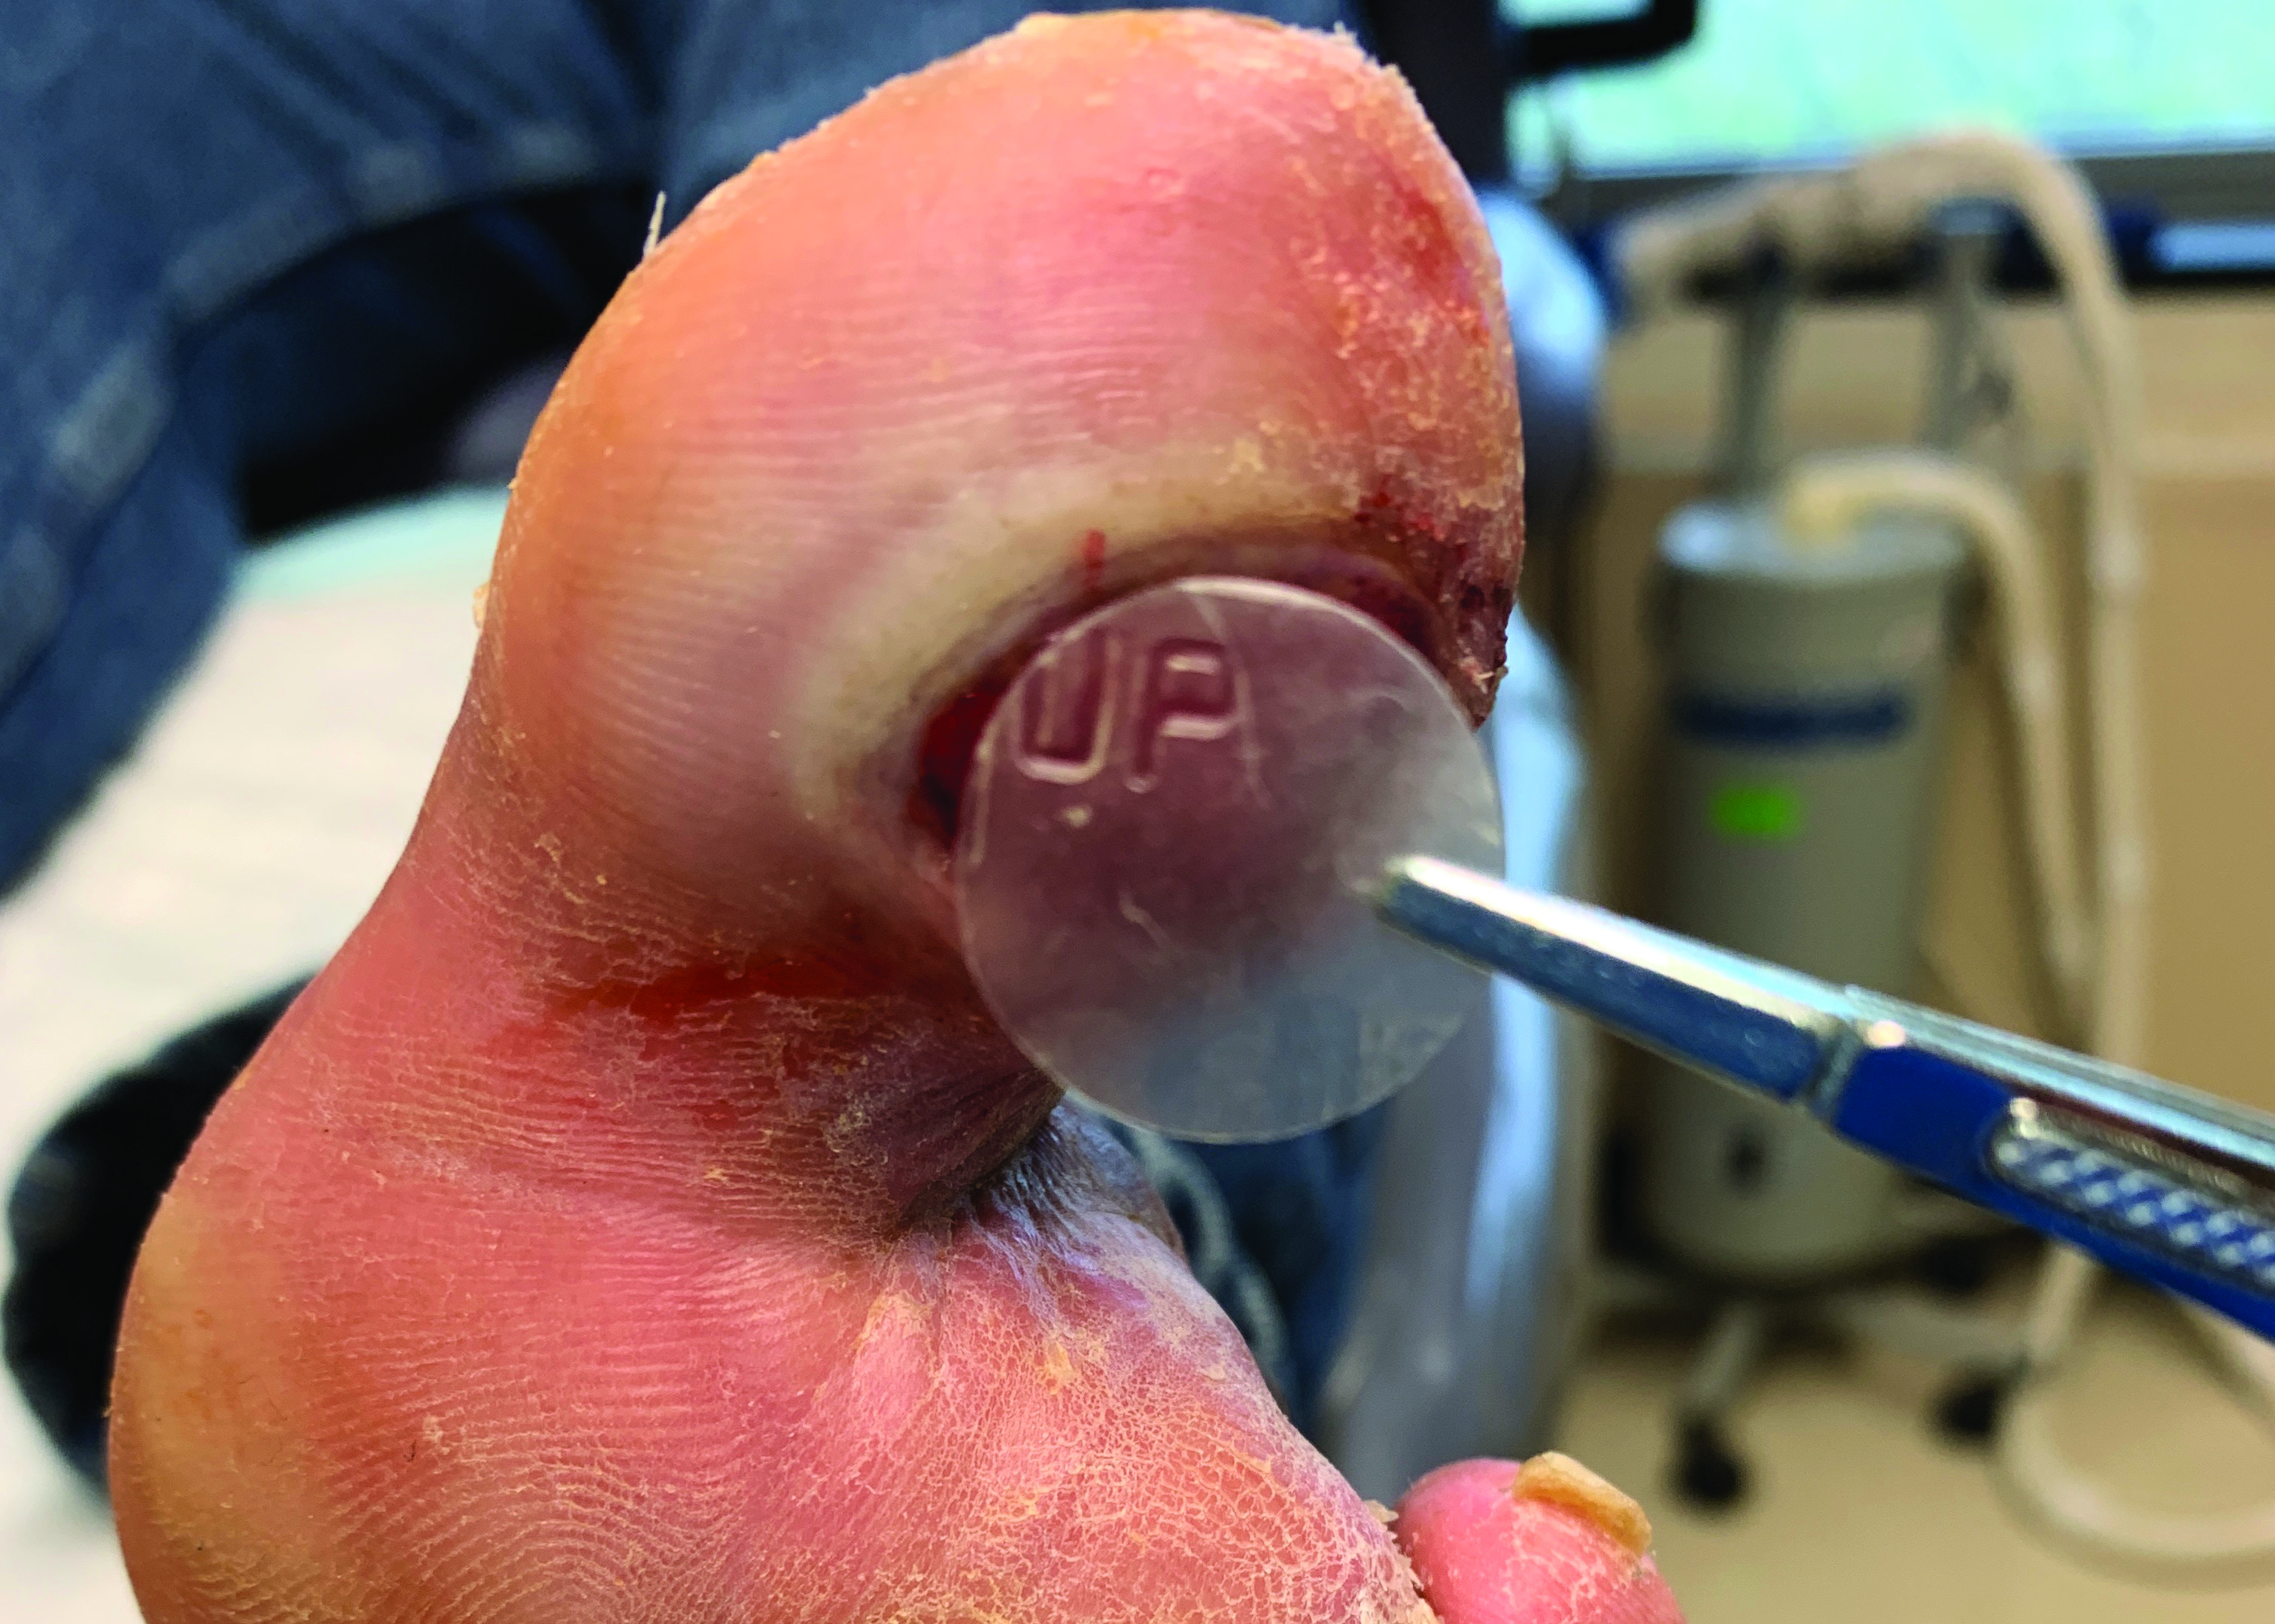 This photo shows the same plantar ulceration during application of an 18 mm EpiFix® (MiMedx) disc.